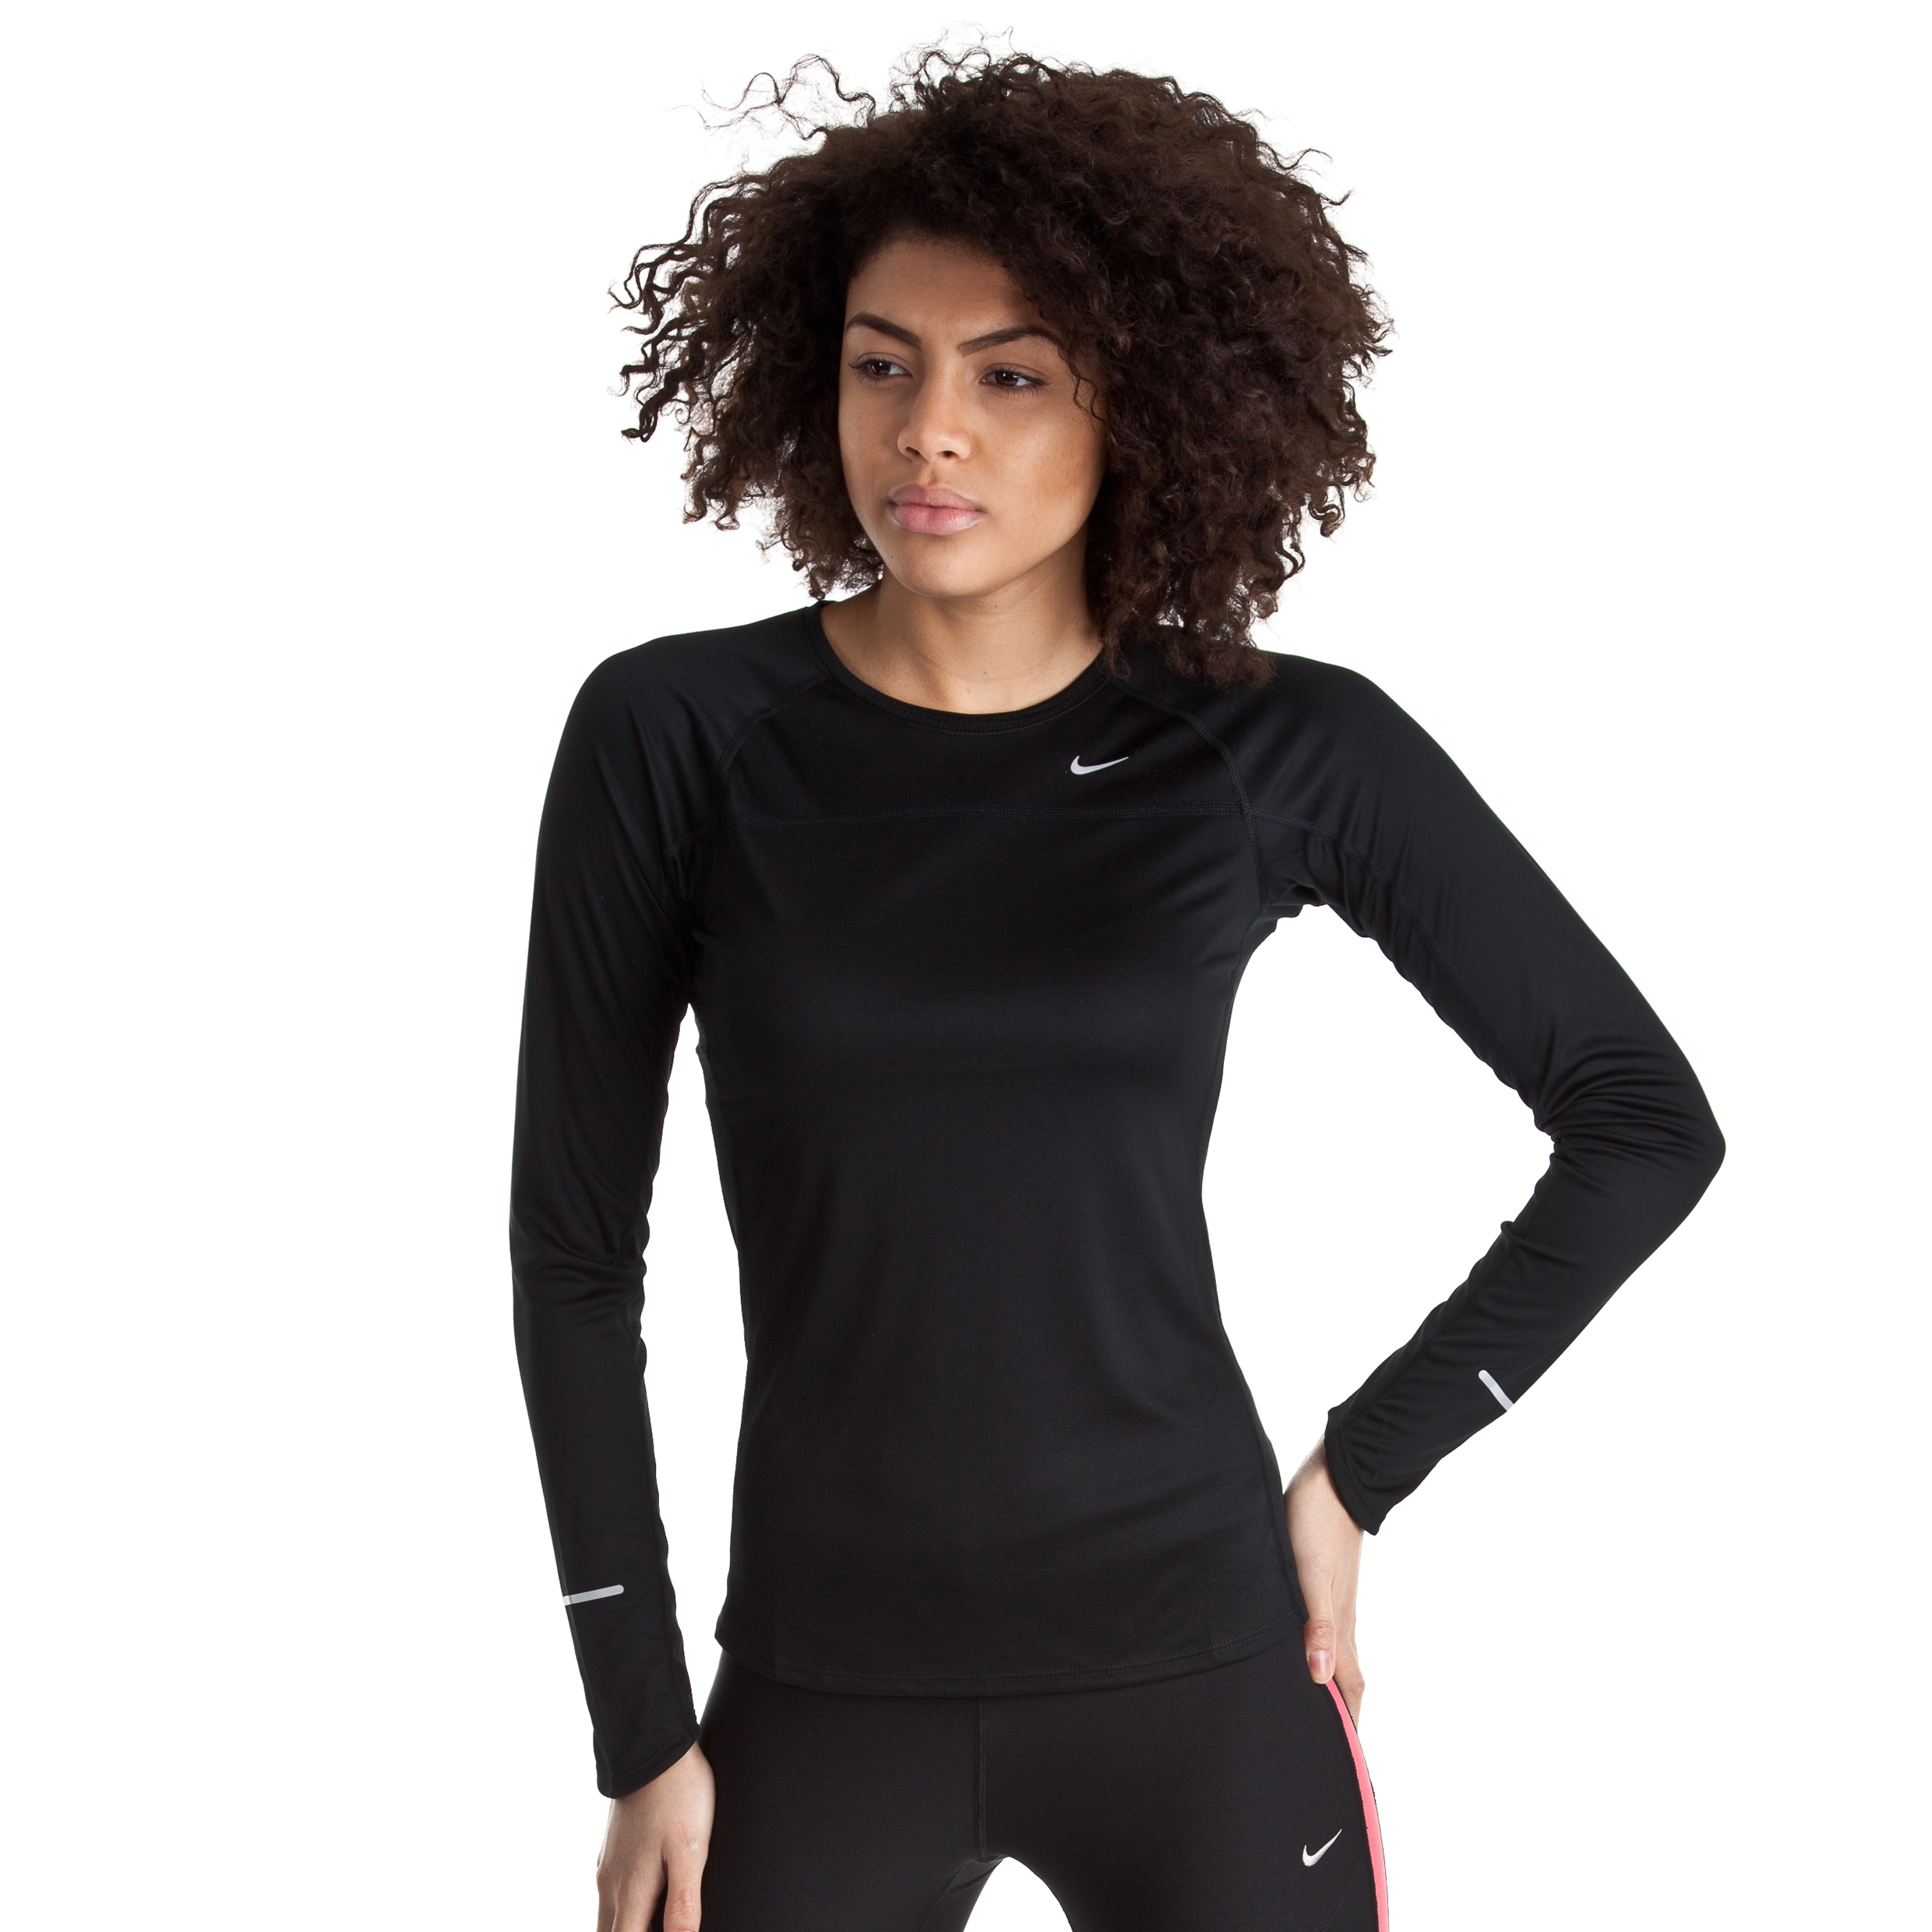 Nike Miler T-Shirt - Black/Reflective Silver - Long Sleeve - Womens